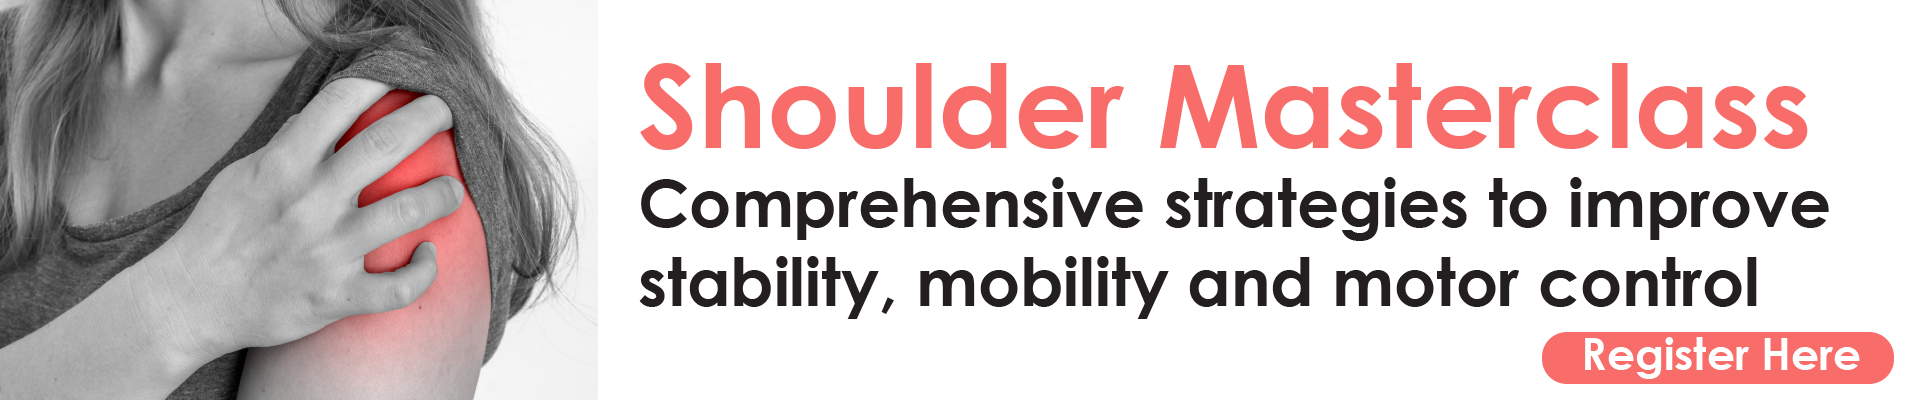 Shoulder Masterclass: Comprehensive Strategies to Improve Stability, Mobility and Motor Control